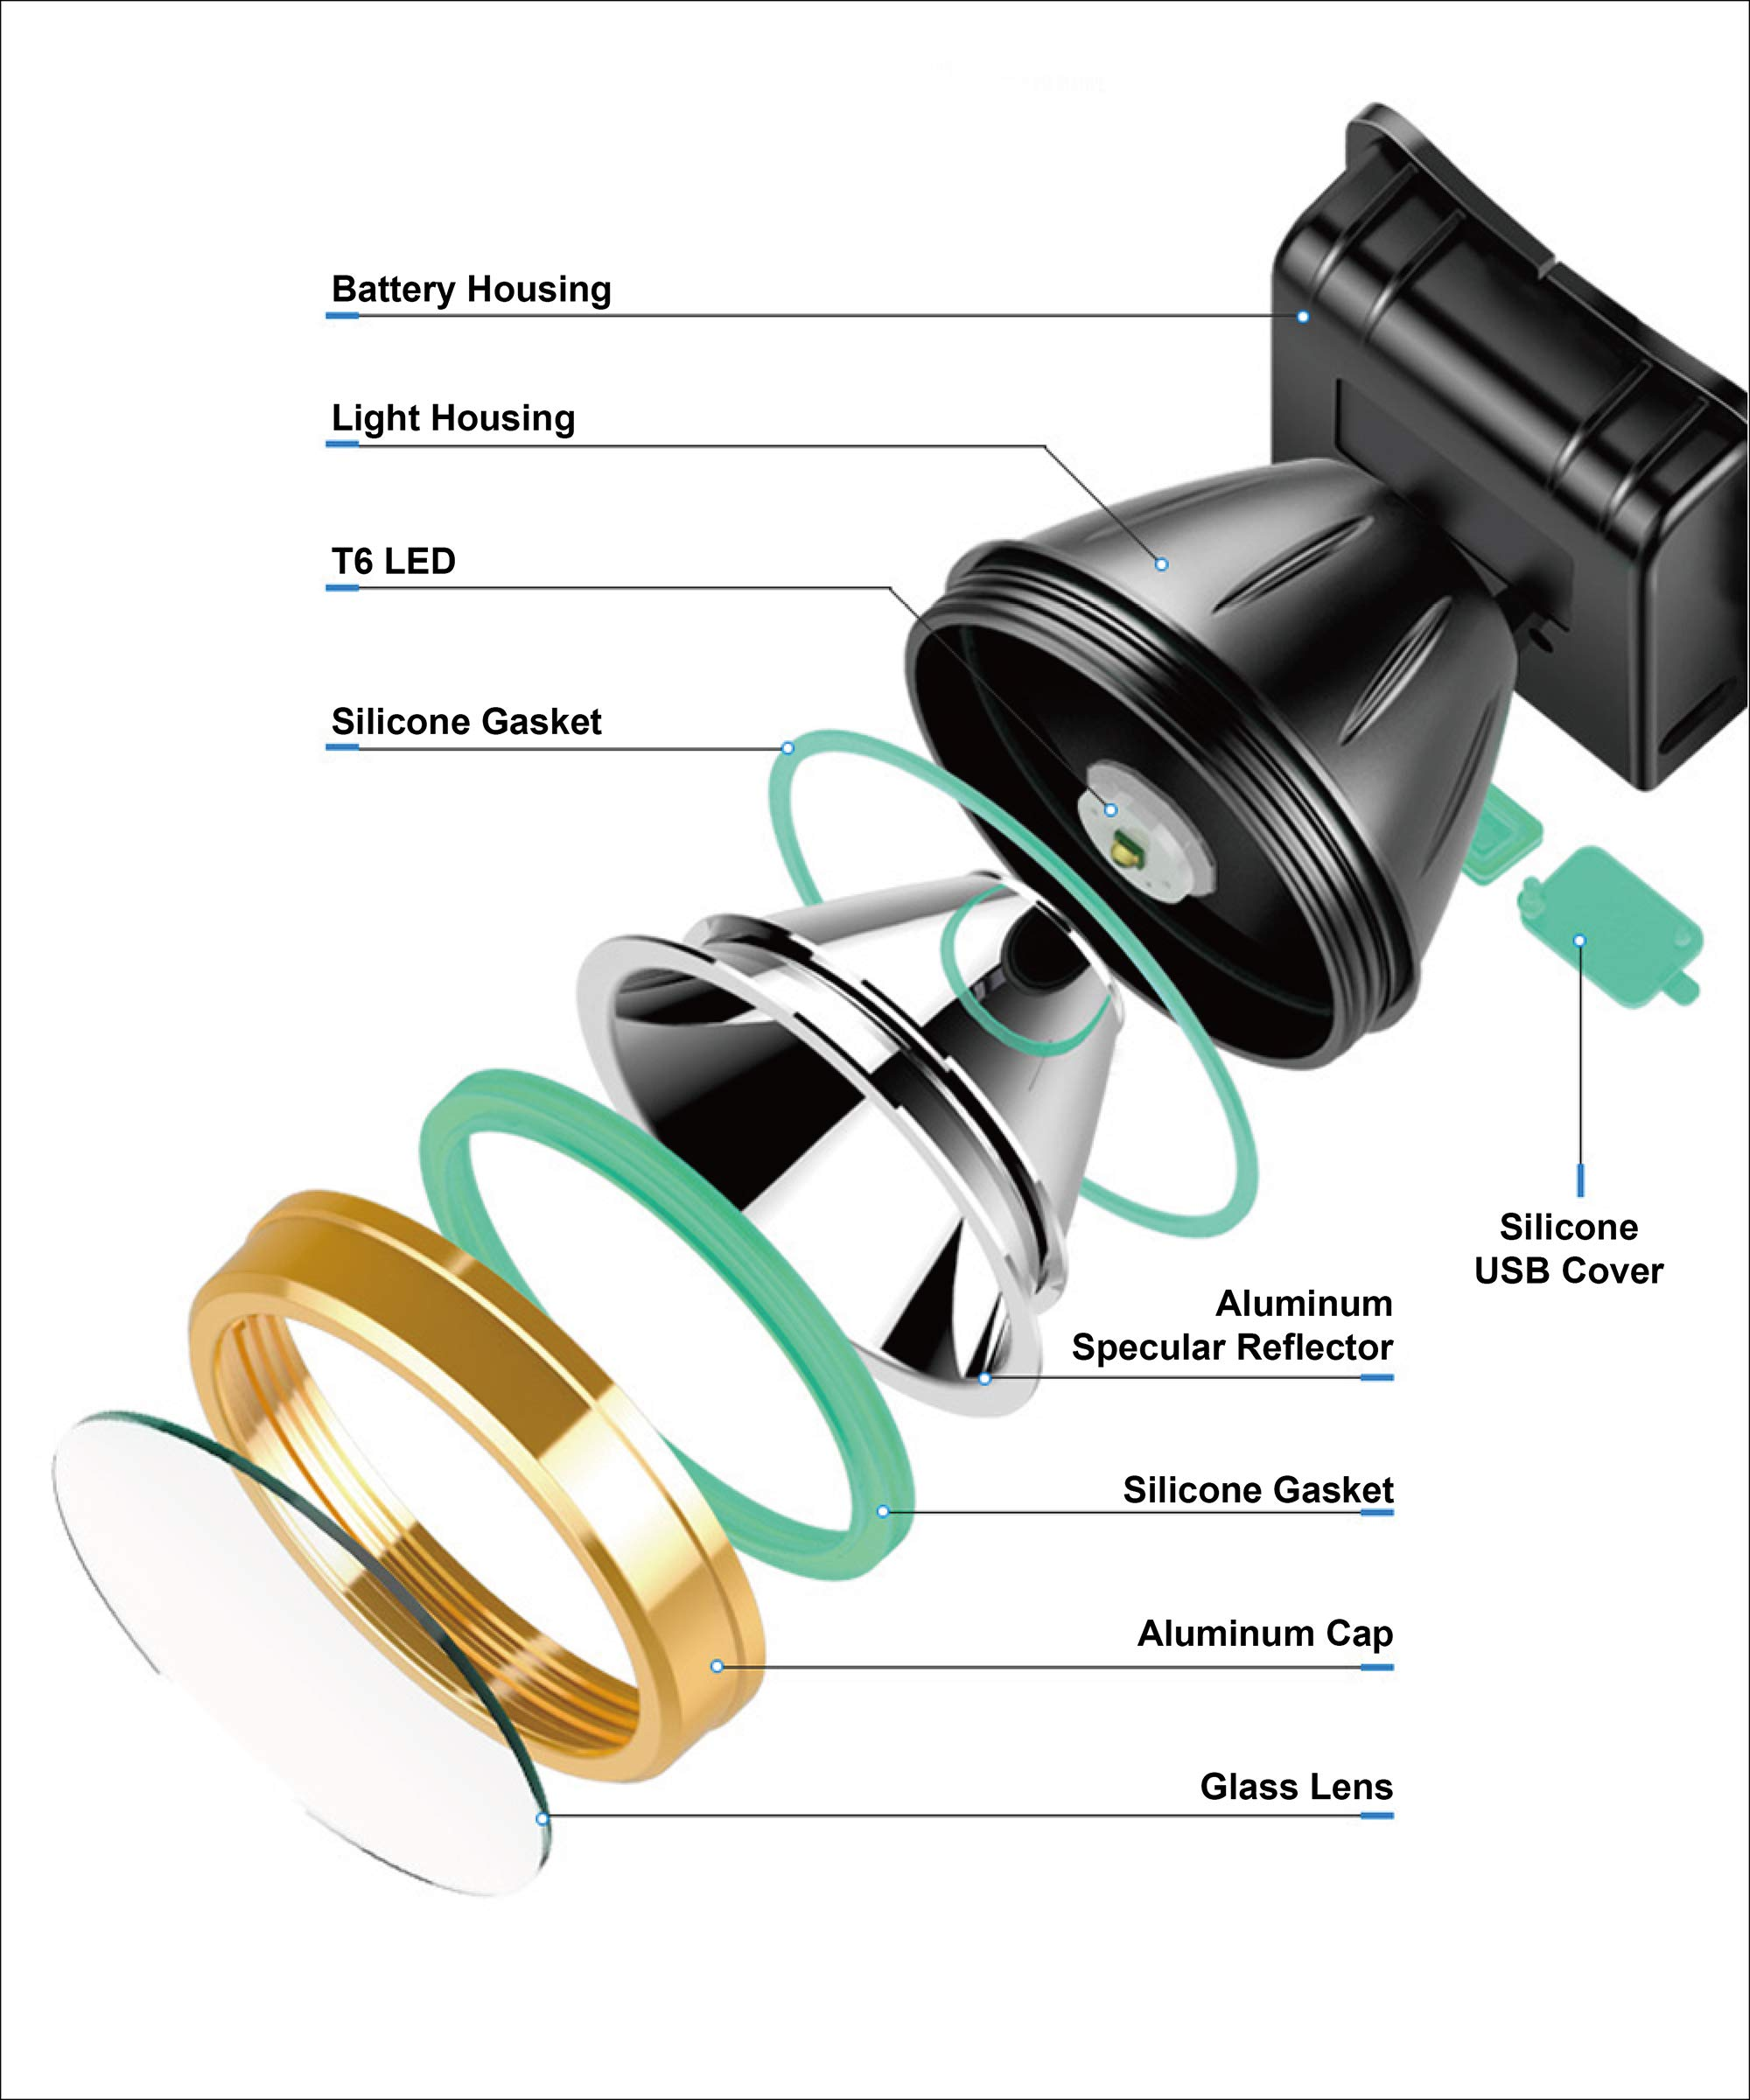 LED Headlamp, LED Headlamp USB Rechargeable, LED Headlamp Flashlight, Outdoor USB LED Headlamp, Waterproof with 2 Lighting Modes, Battery Powered Swivel LED Headlight for Camping and Hiking by Cavepop (Image #4)